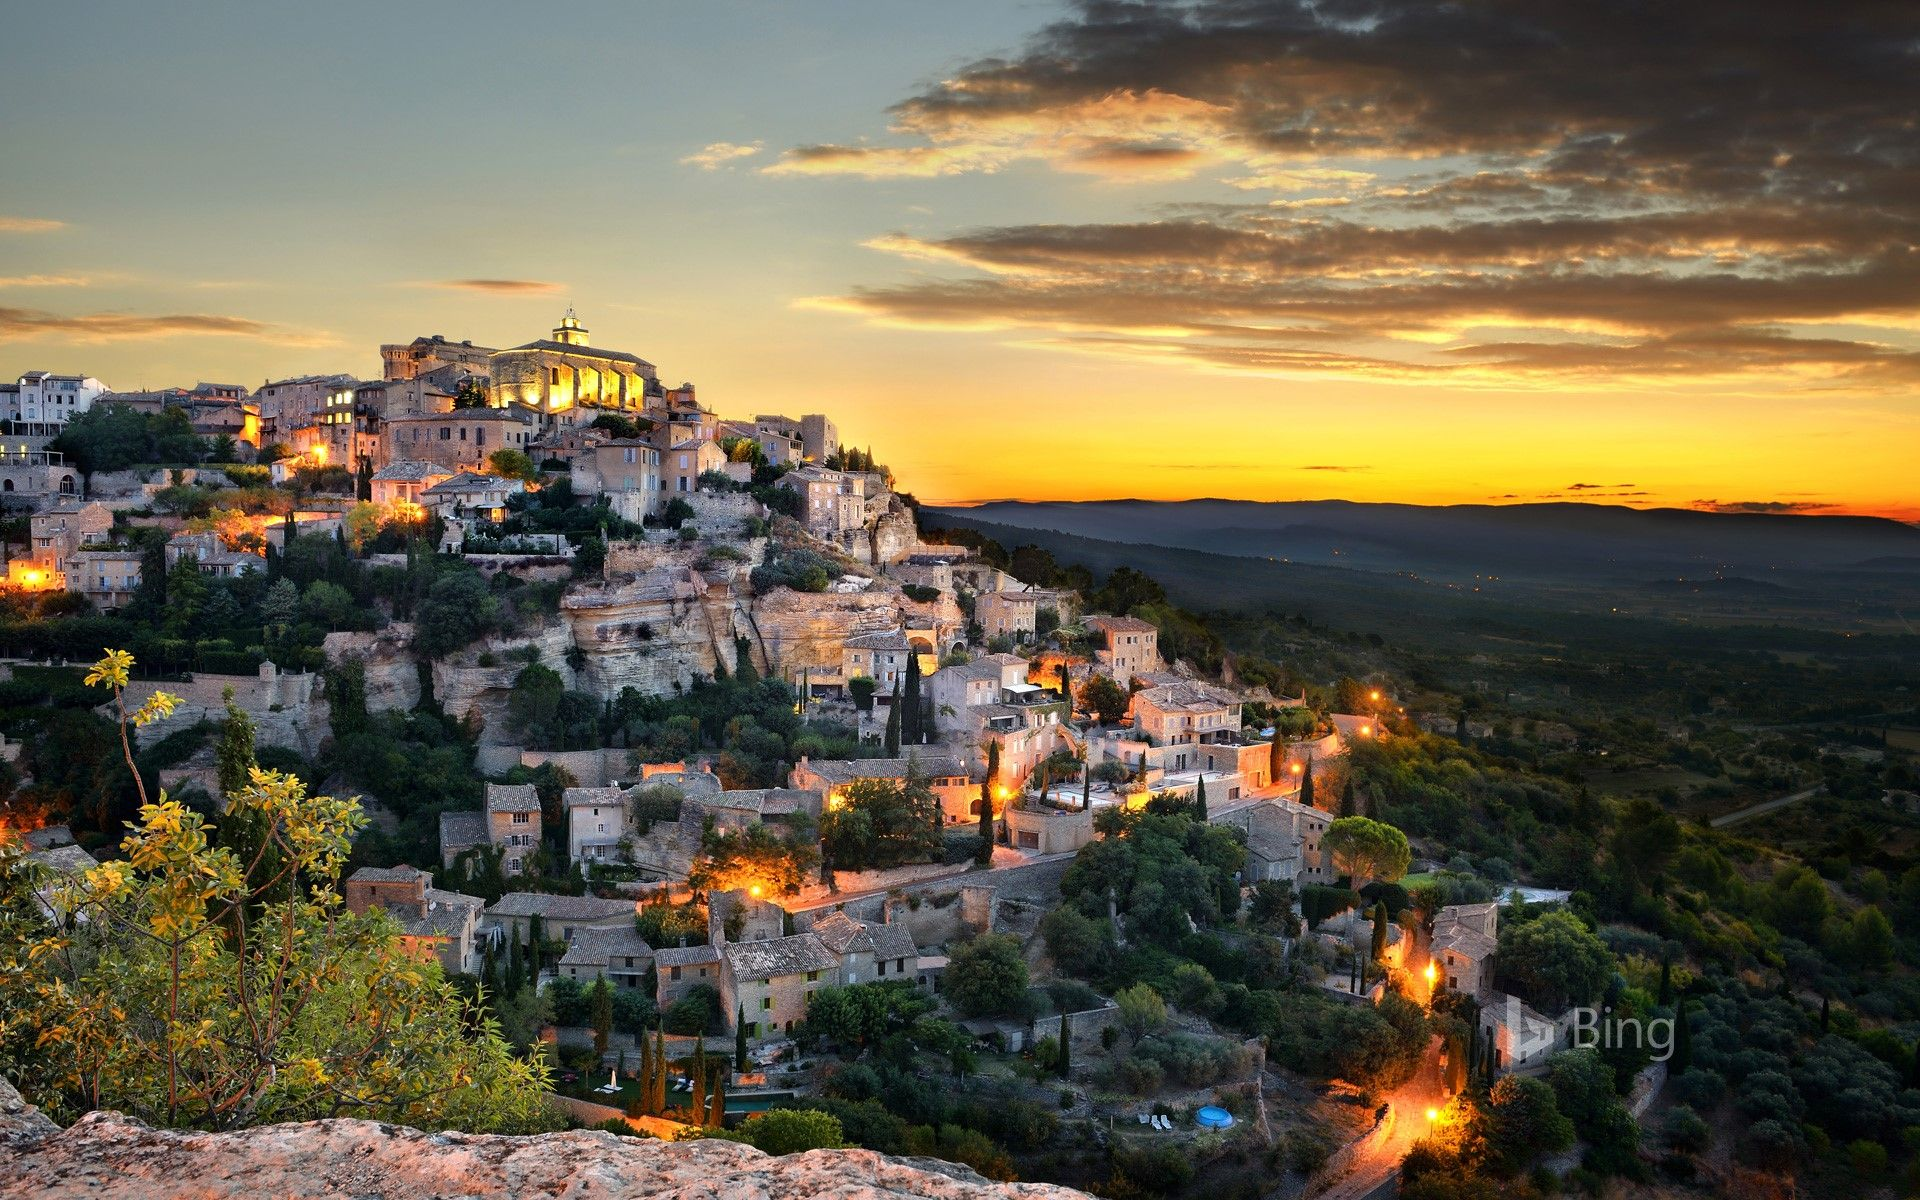 Village of Gordes Provence Alpes C´te d Azur France